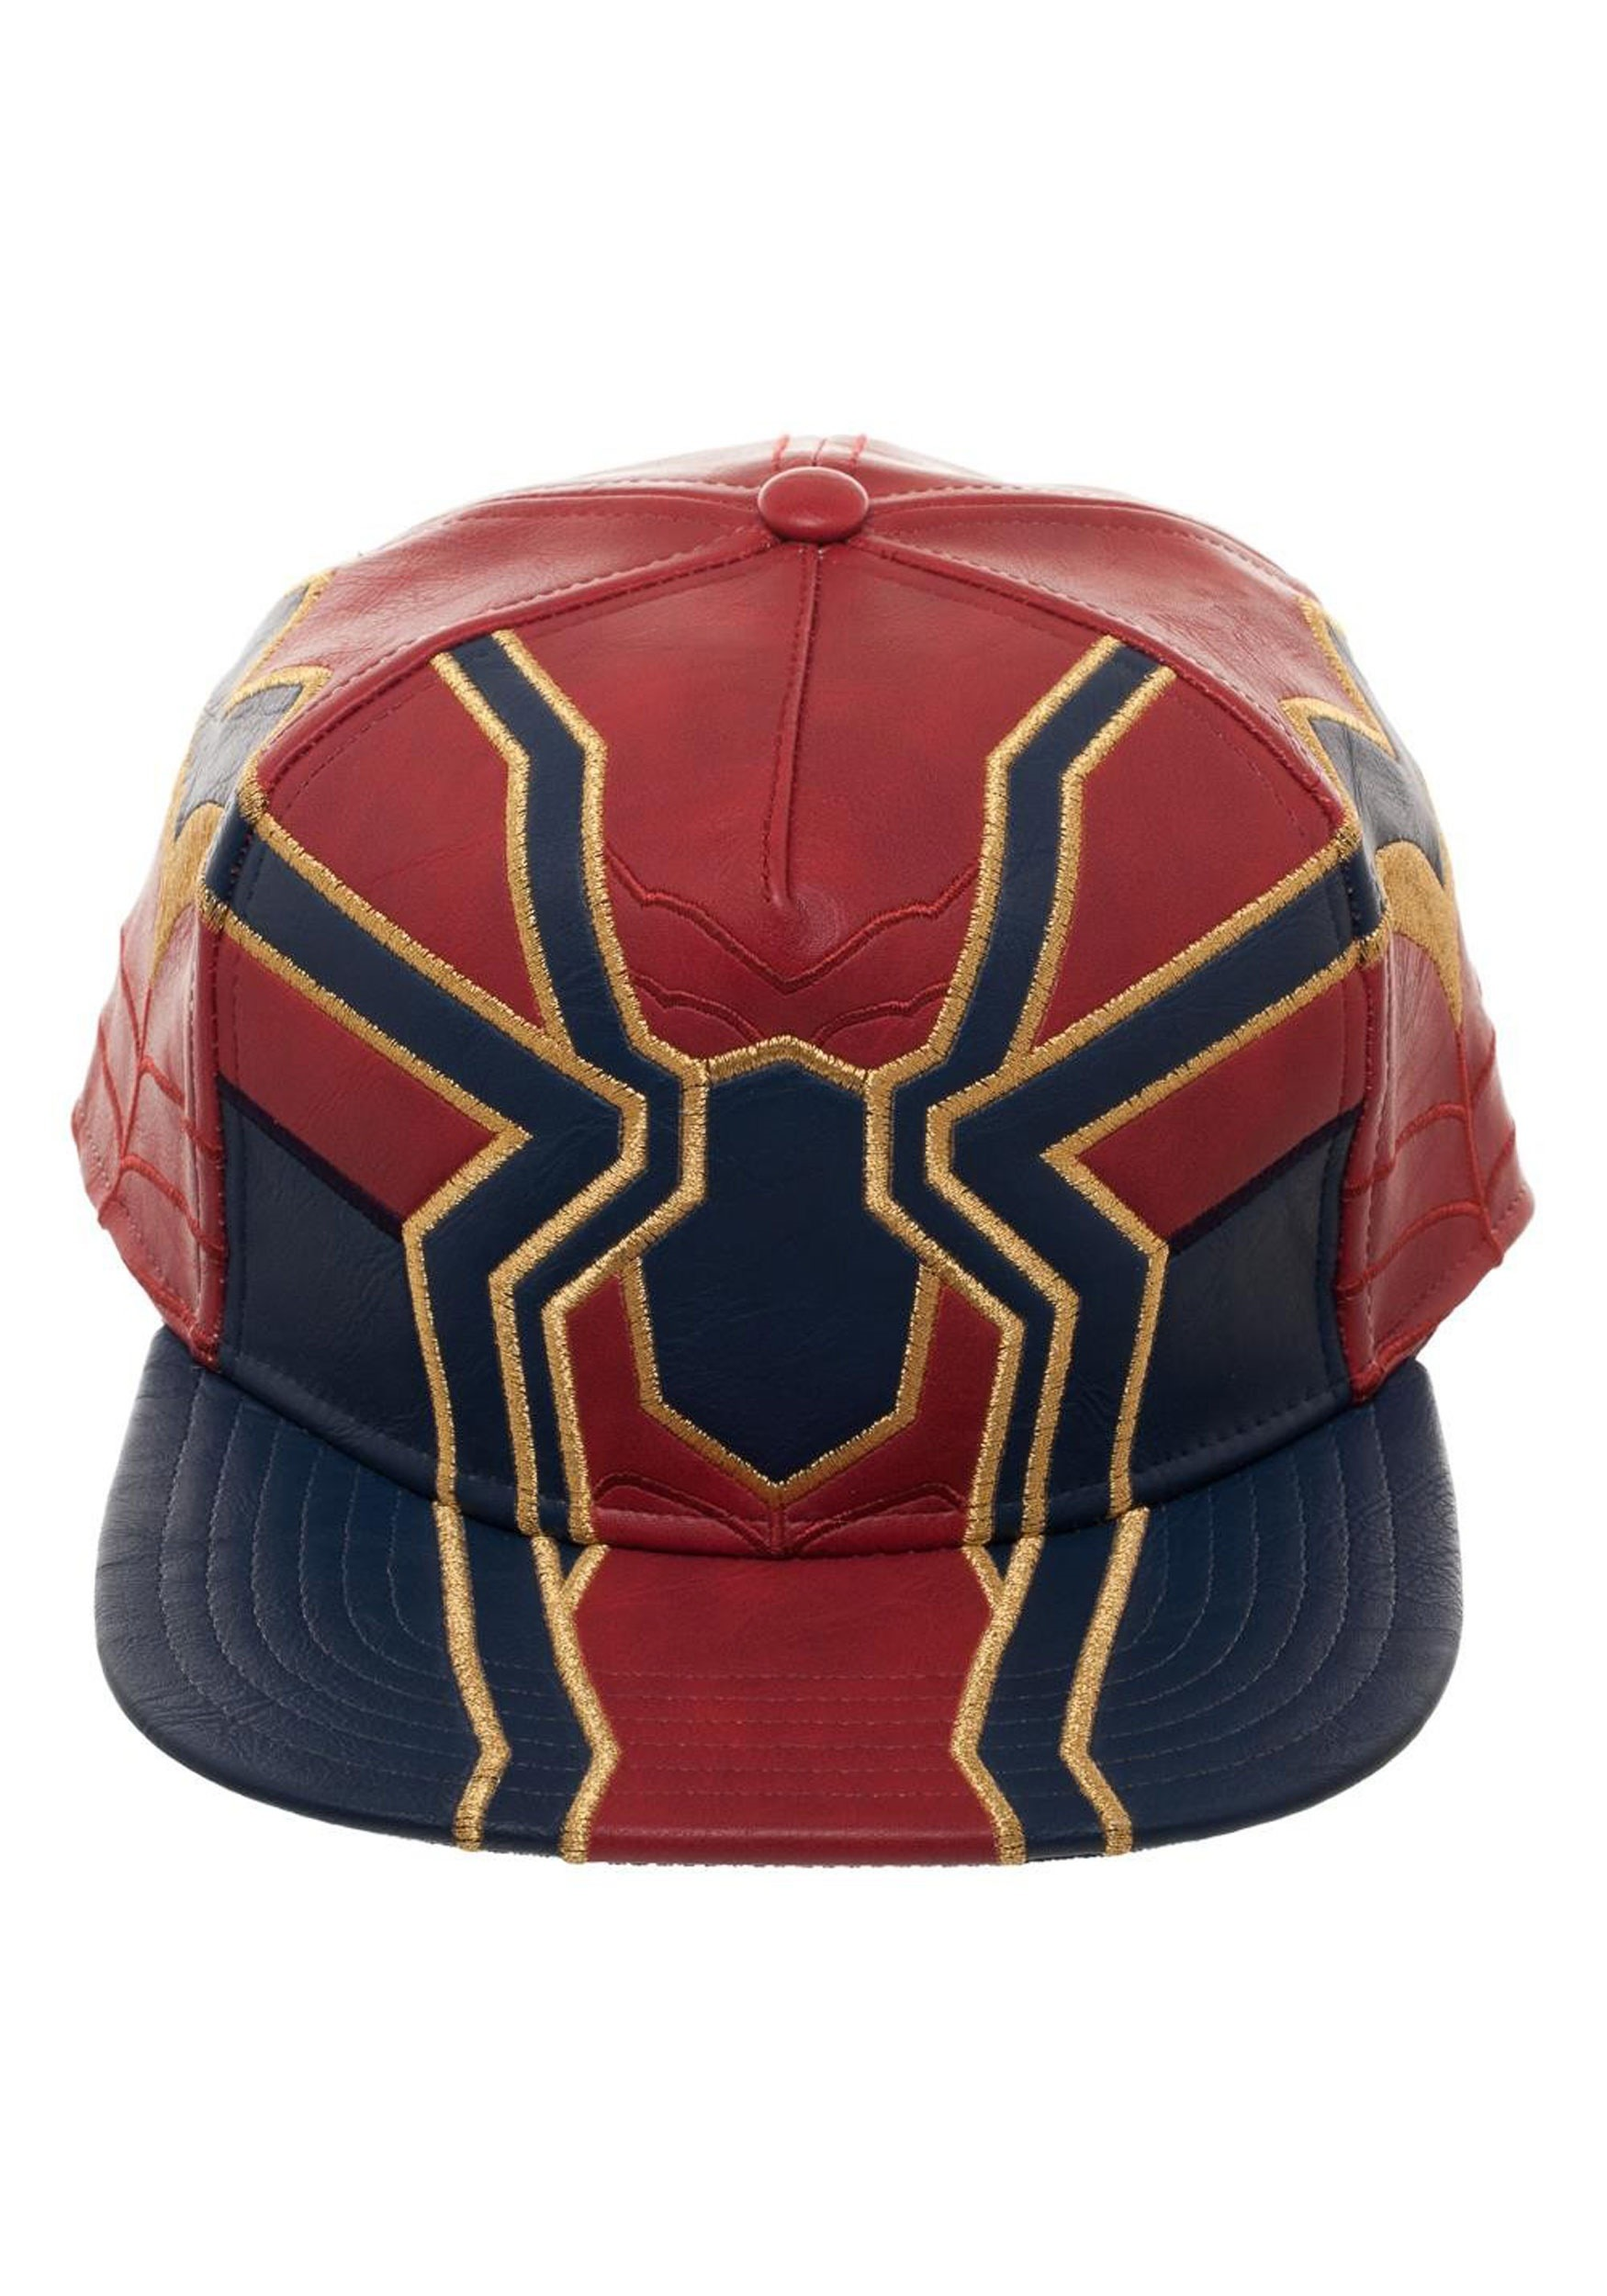 Marvel Avengers Infinity War Iron Spider Suit Up PU Snapback Hat 85a52d0580e4